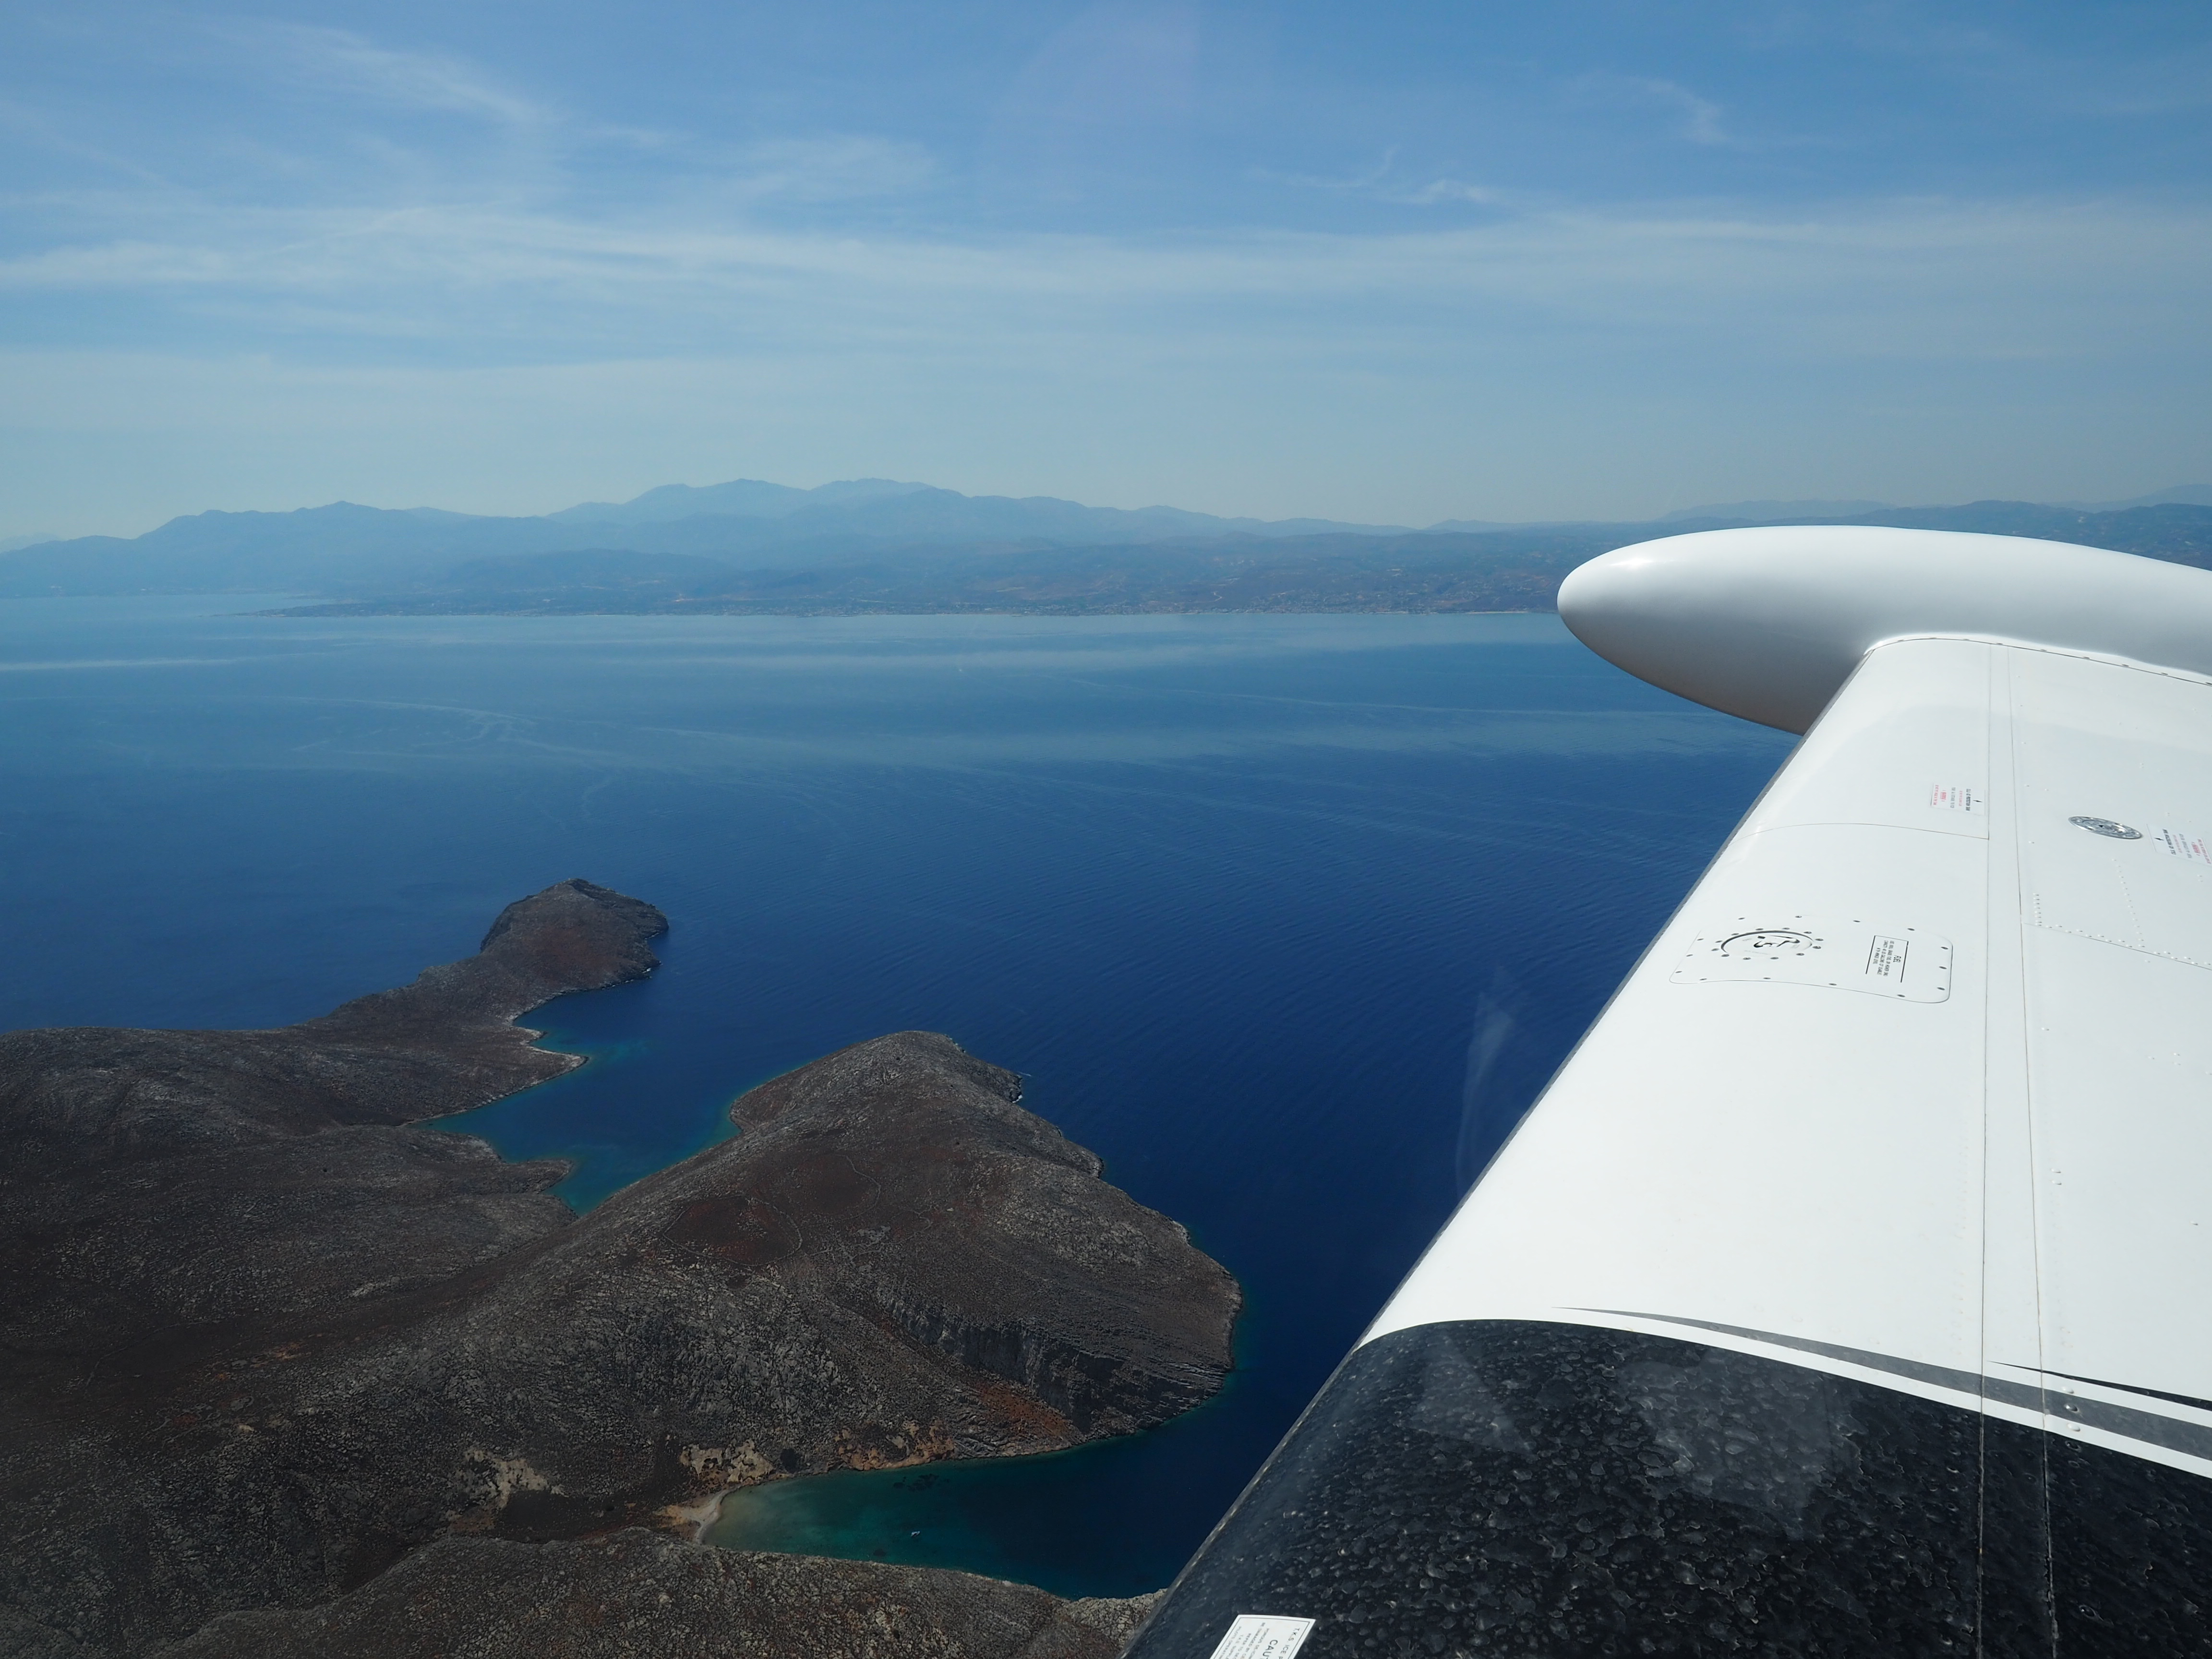 Flying a Light Airplane Around the World: Rules to Live By